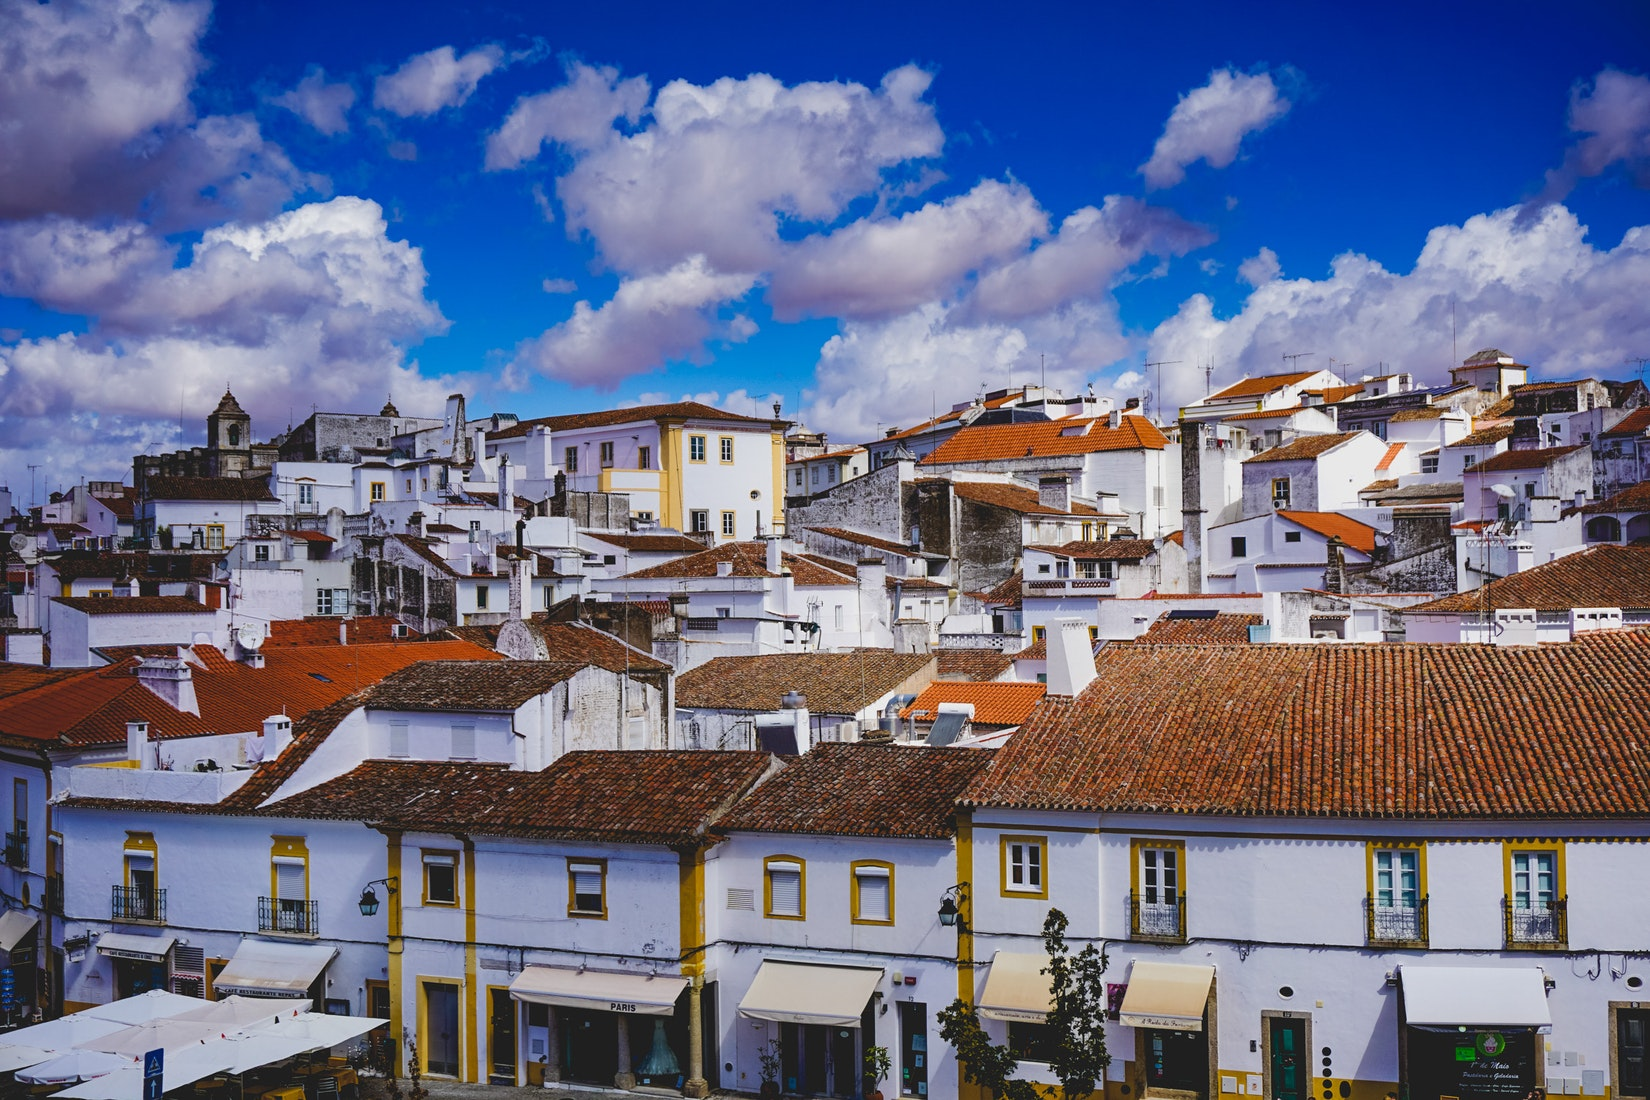 Rows of white homes and buildings in Evora